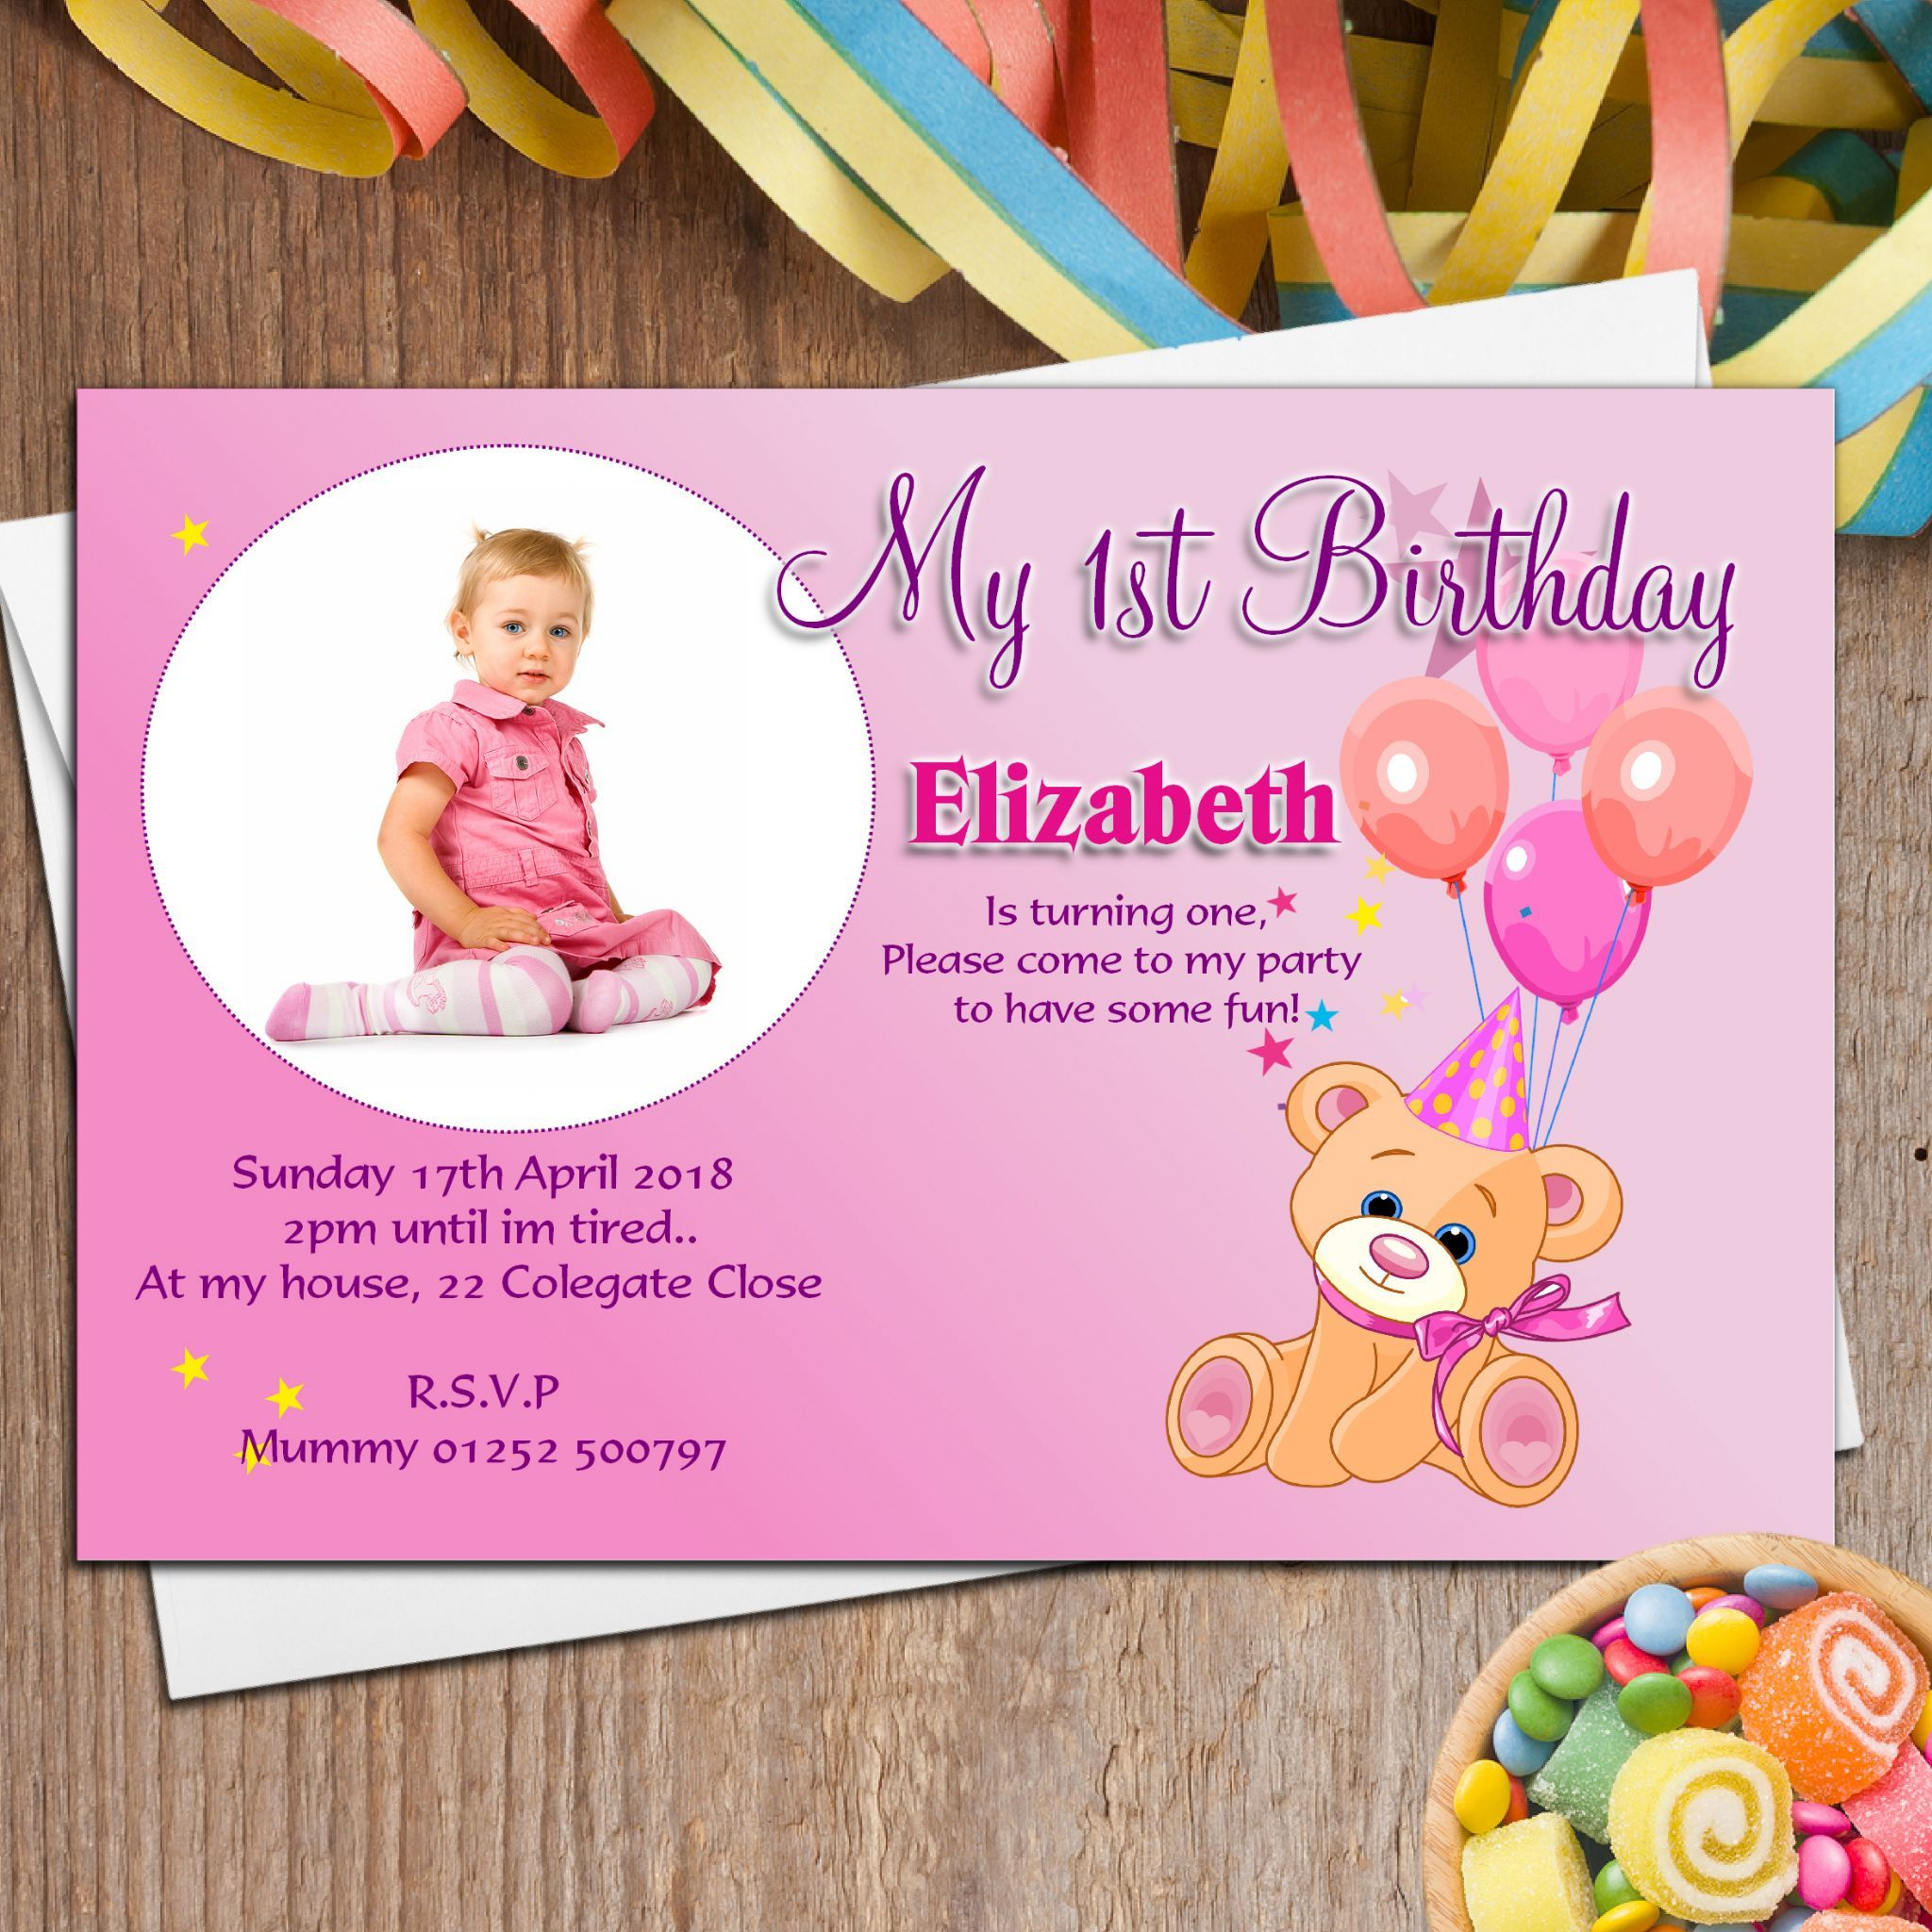 1st birthday greeting cards for baby boy ; e85f72c5f111740177bf30f2e2dee0a7